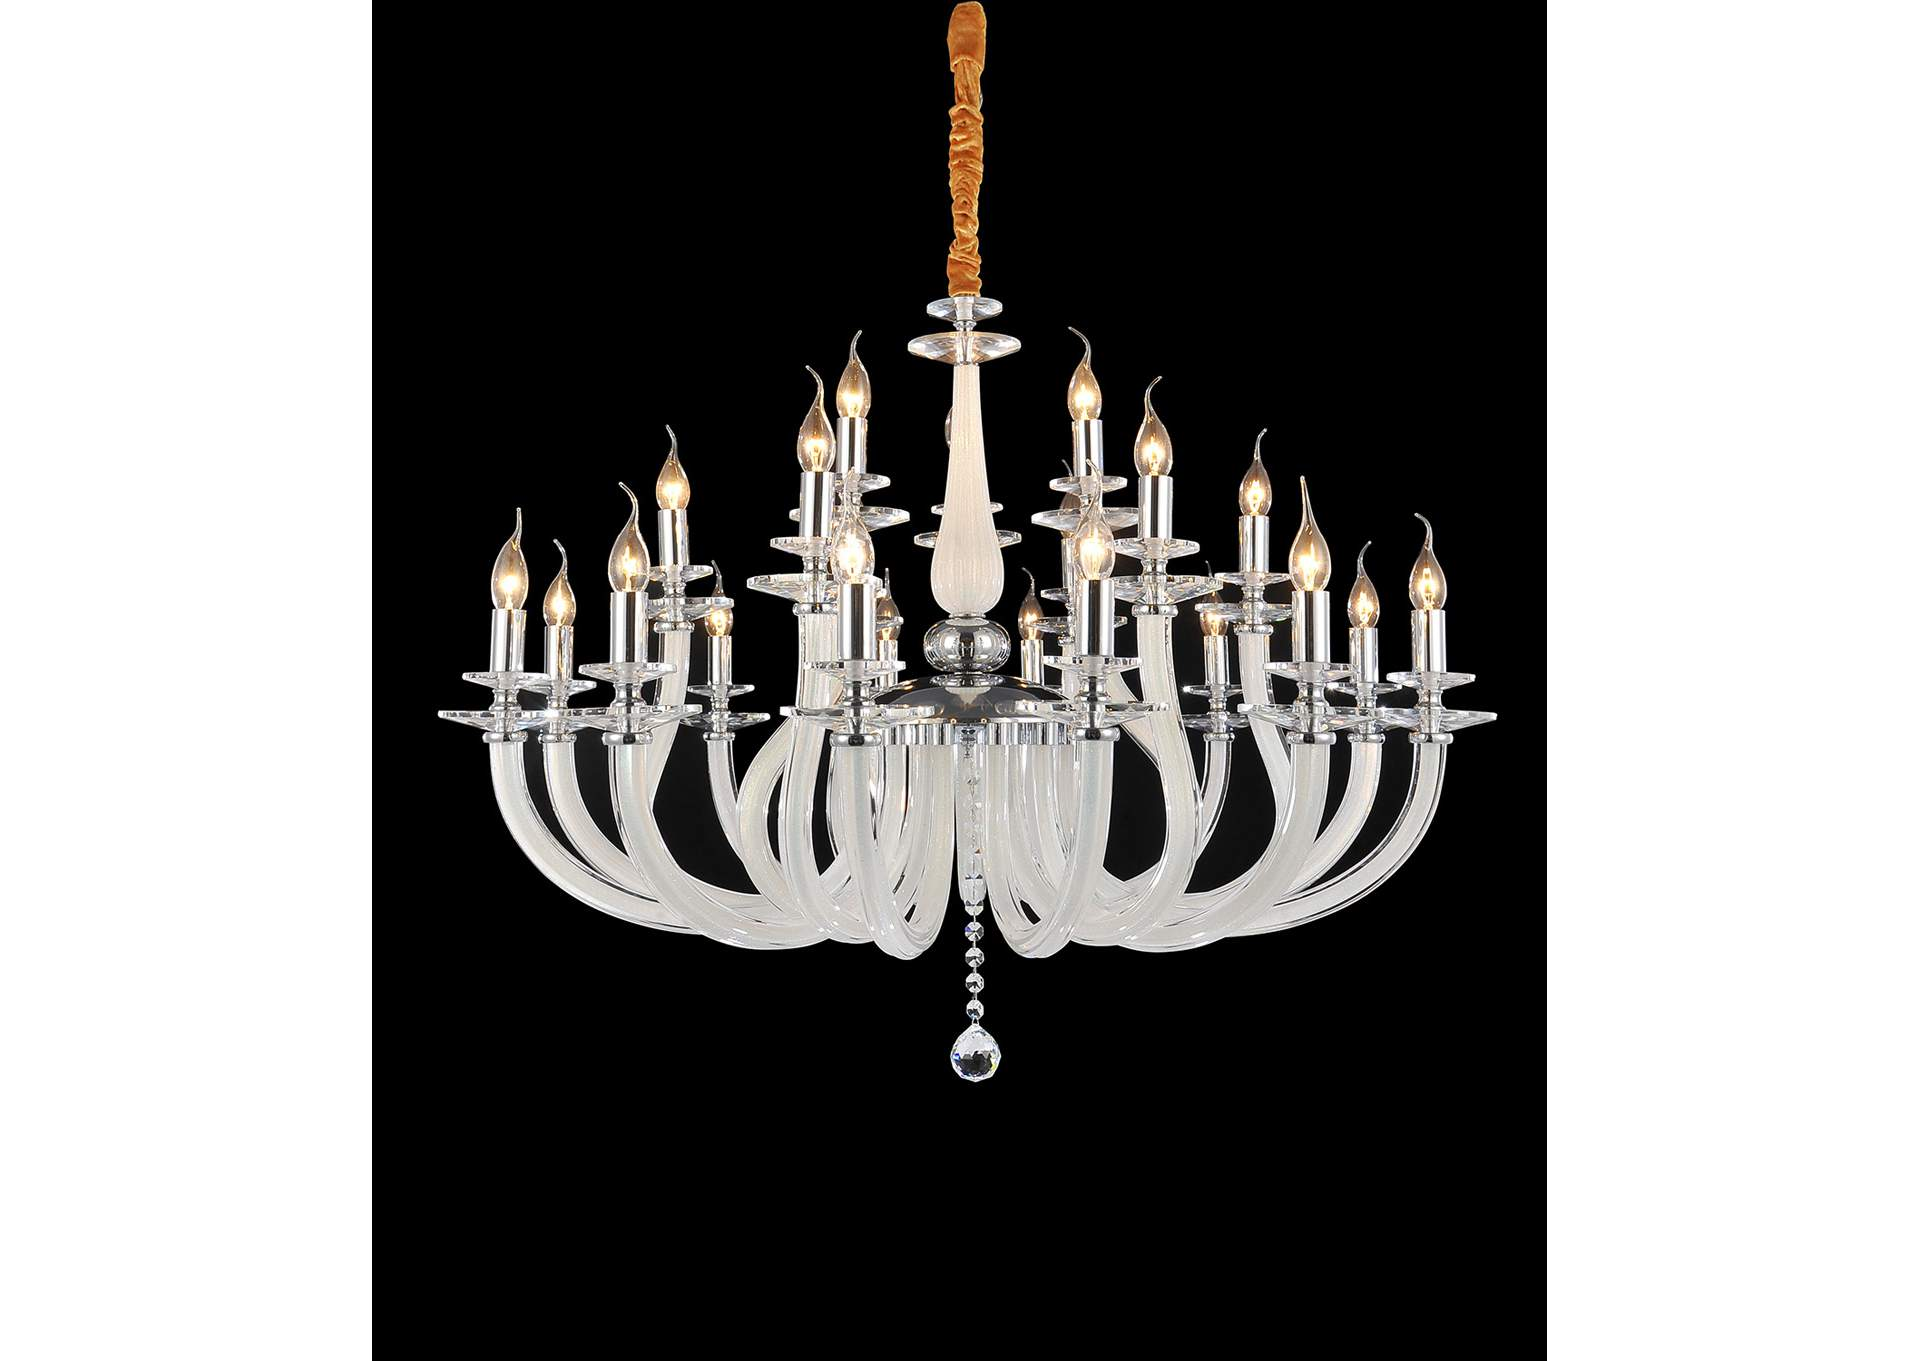 San Marco Glass & Chrome 21 Light Chandelier 220V,AICO